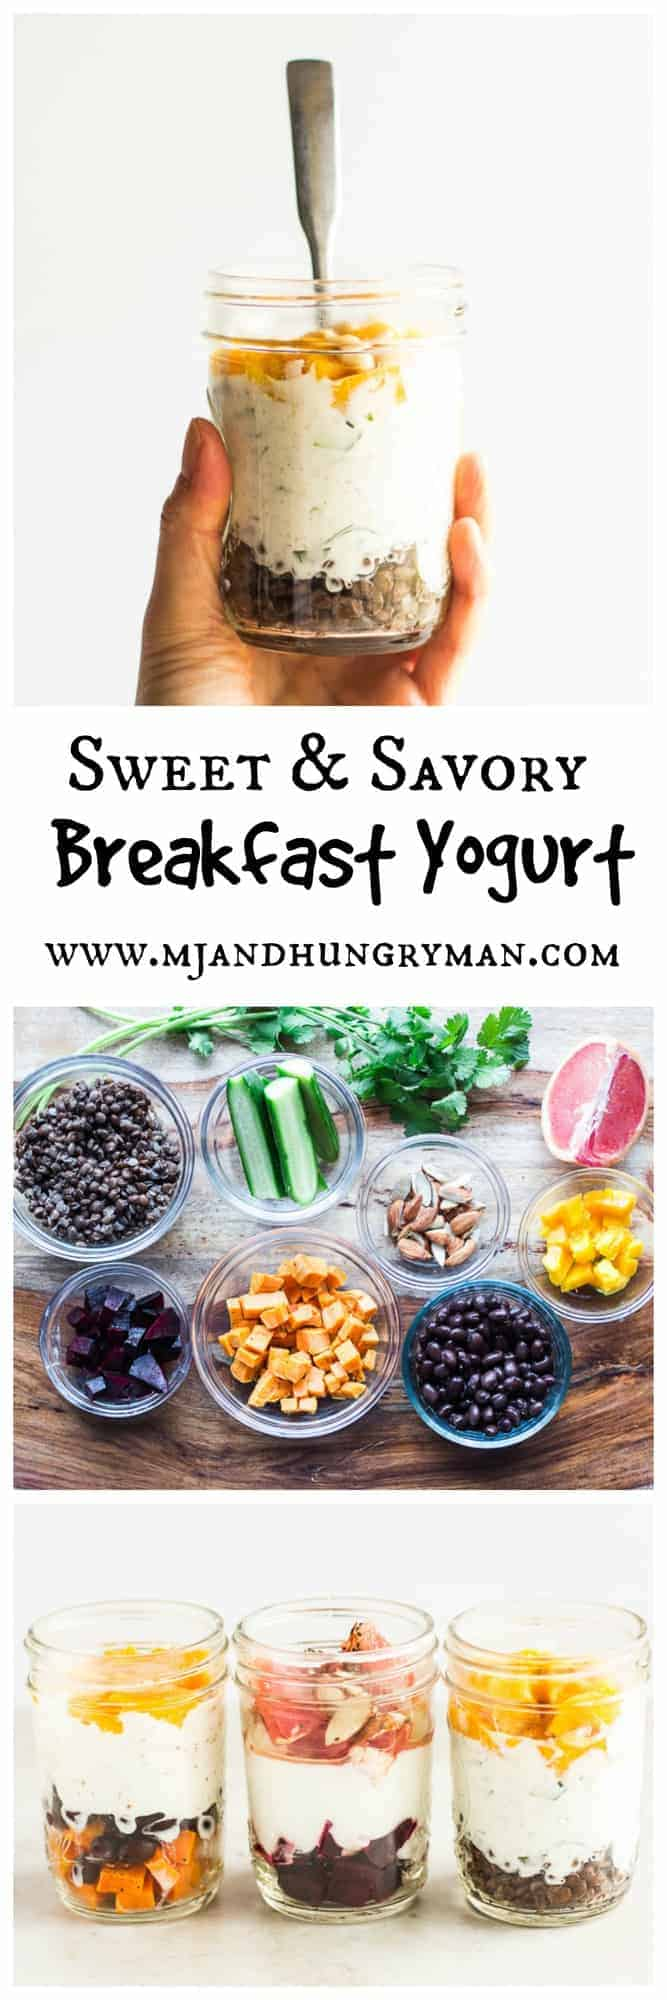 sweet and savory breakfast yogurt